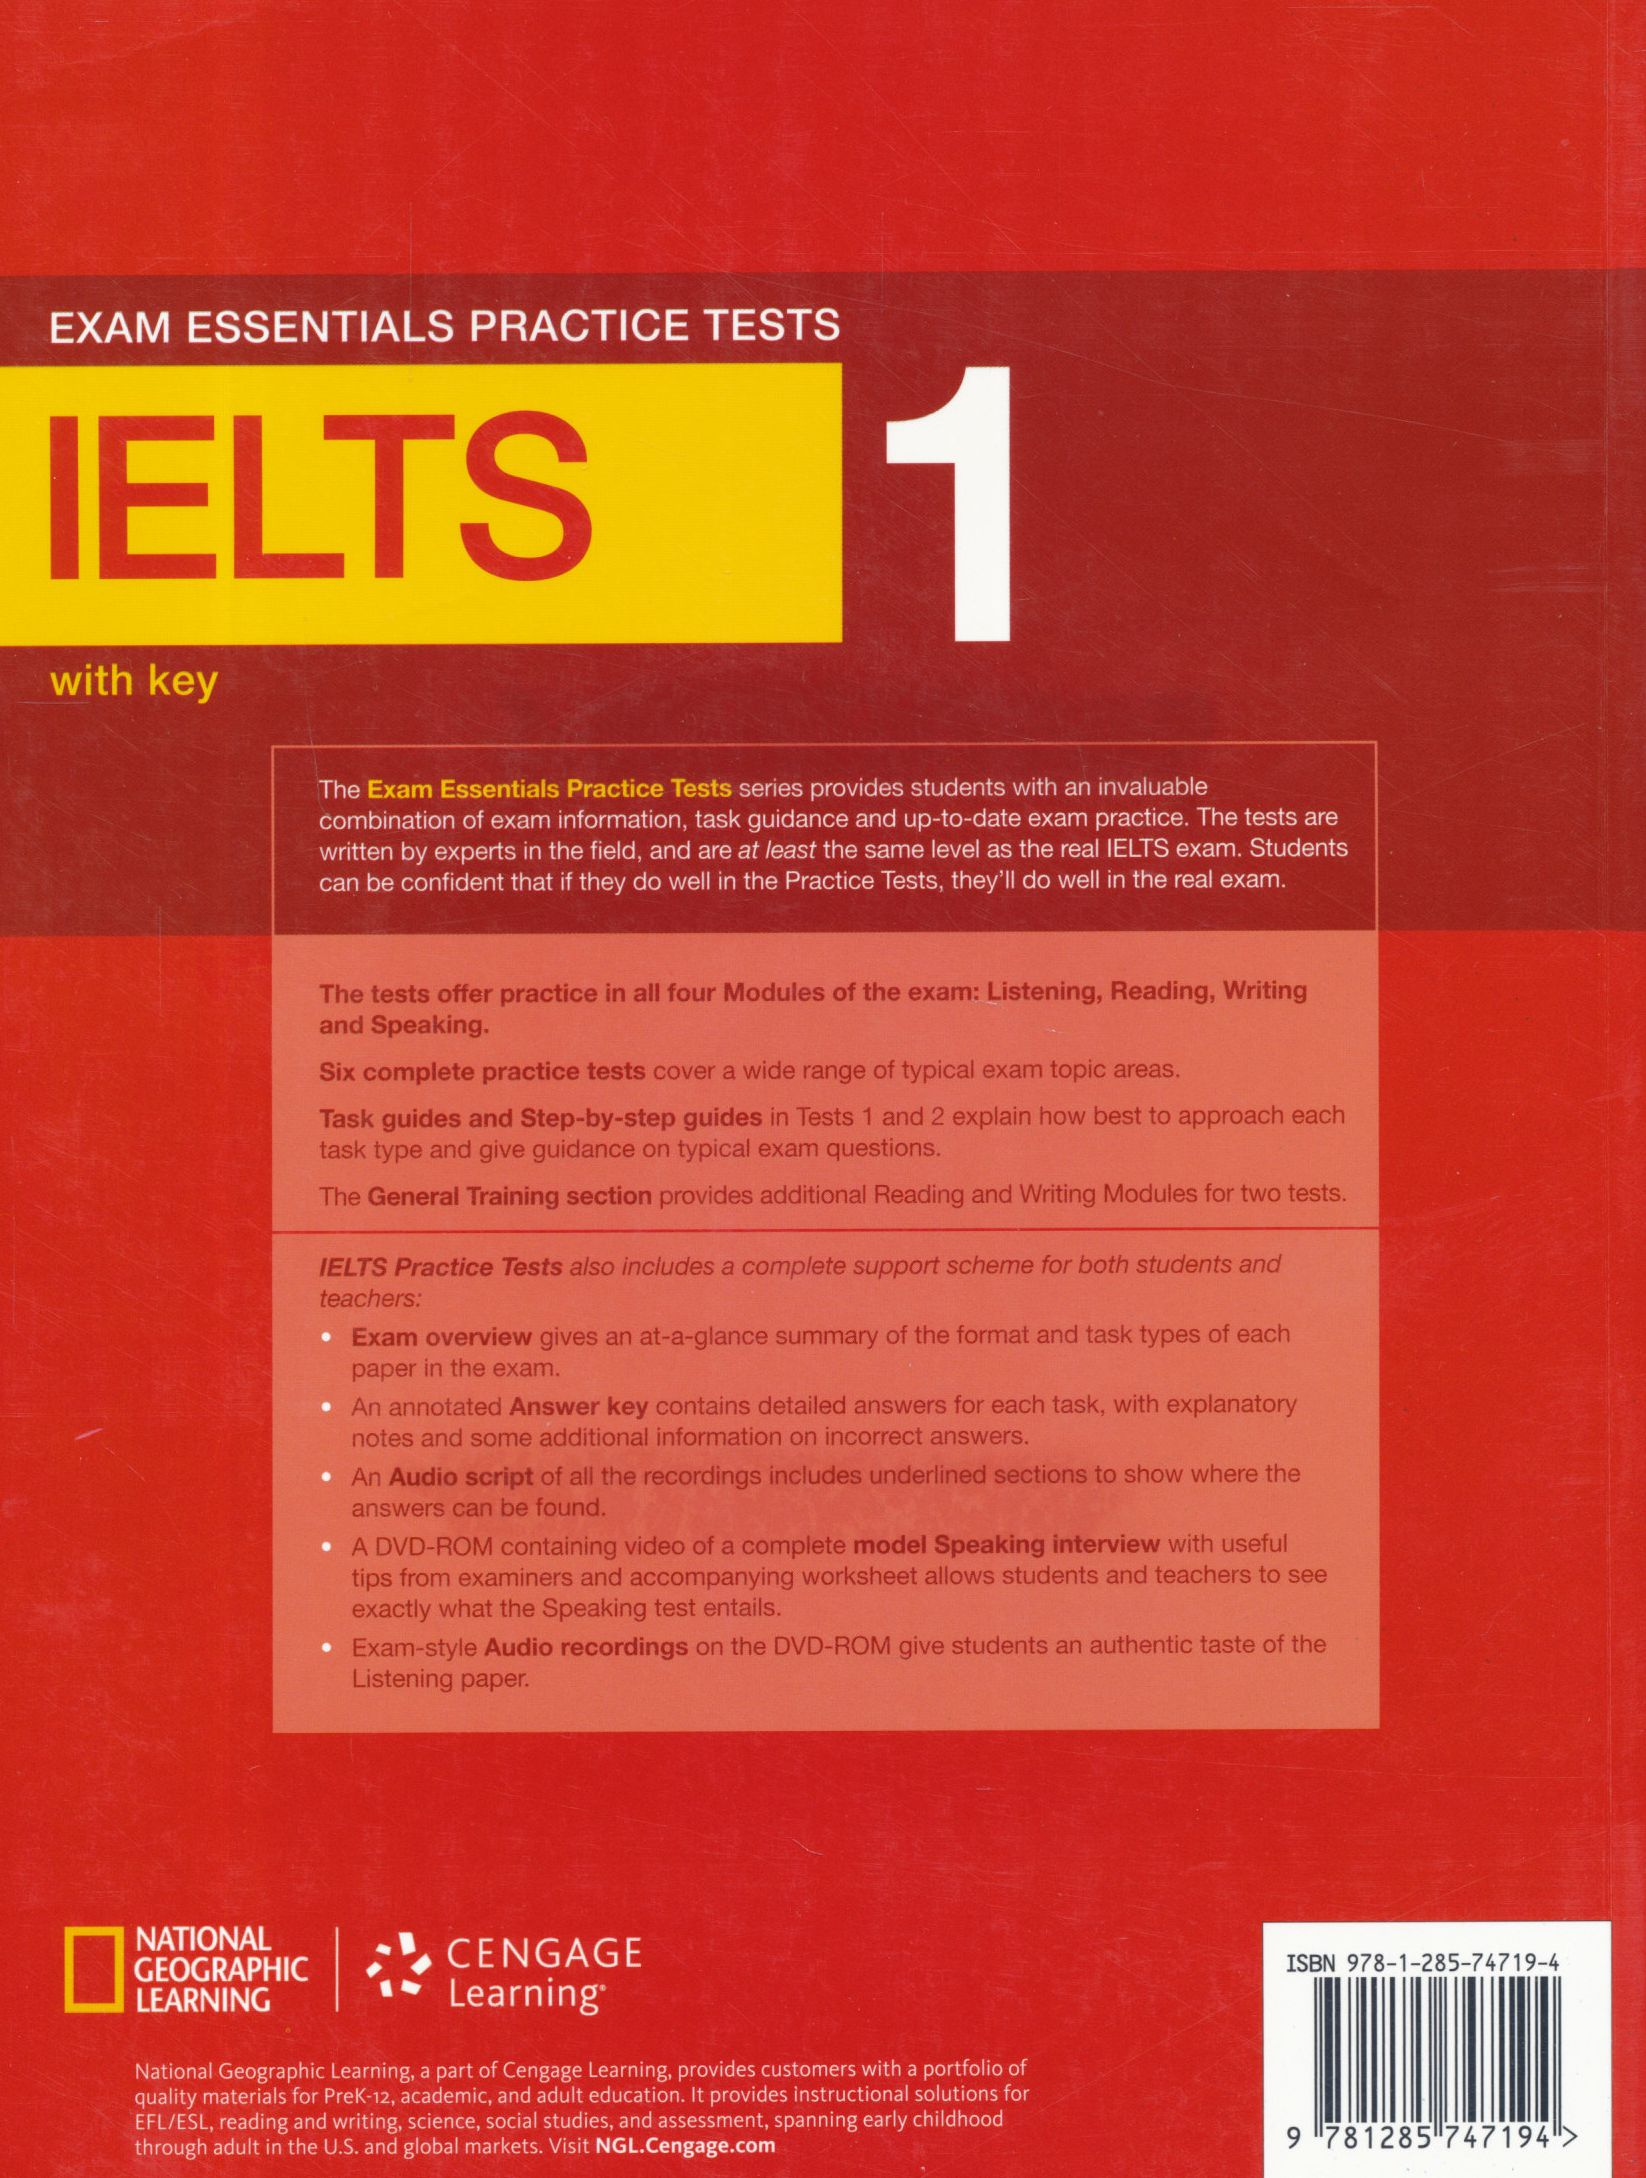 Exam Essentials Practice Tests IELTS 1 with Key and DVD-ROM